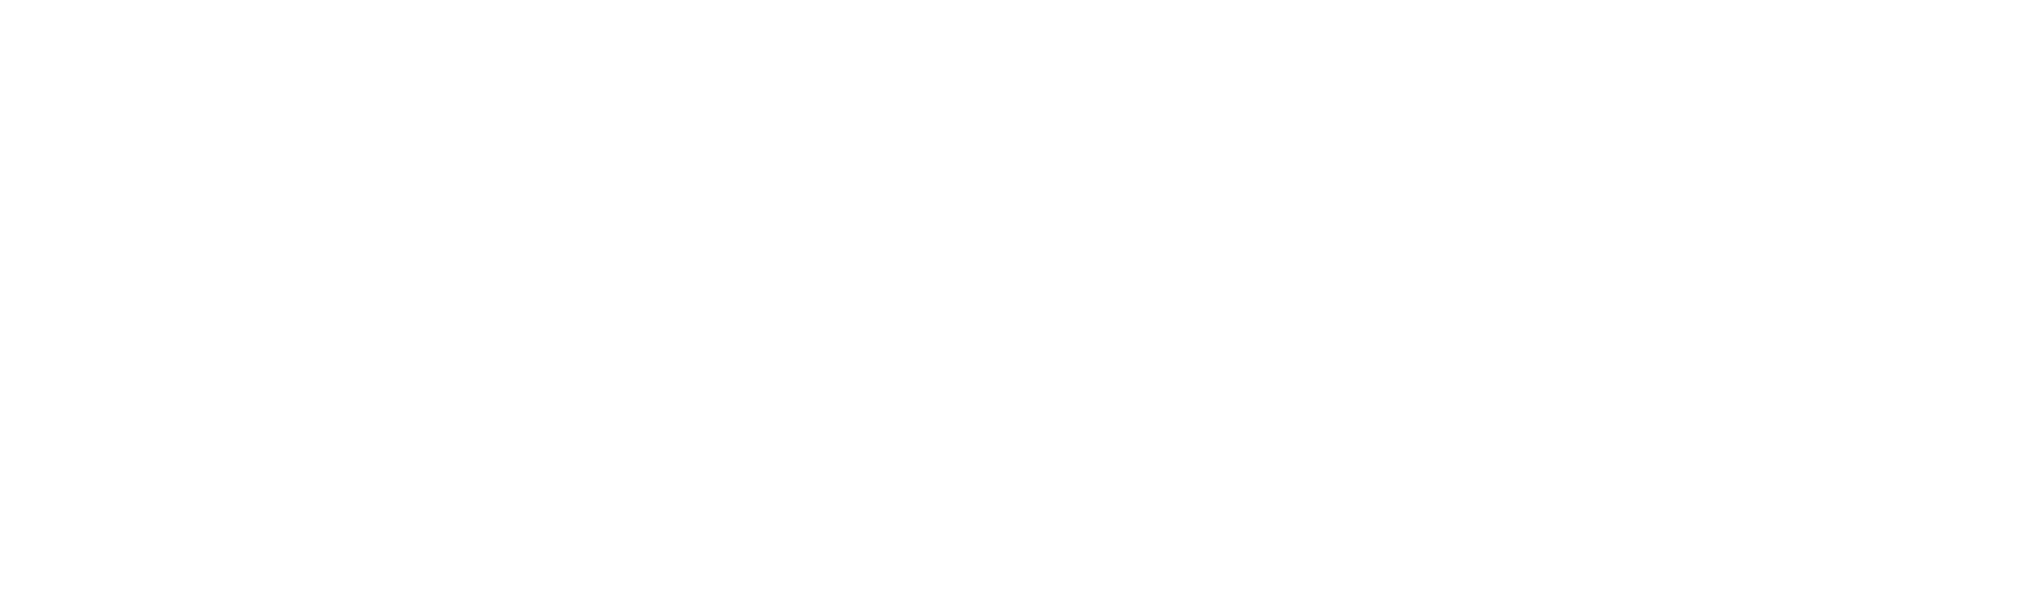 C2 Services Financiers